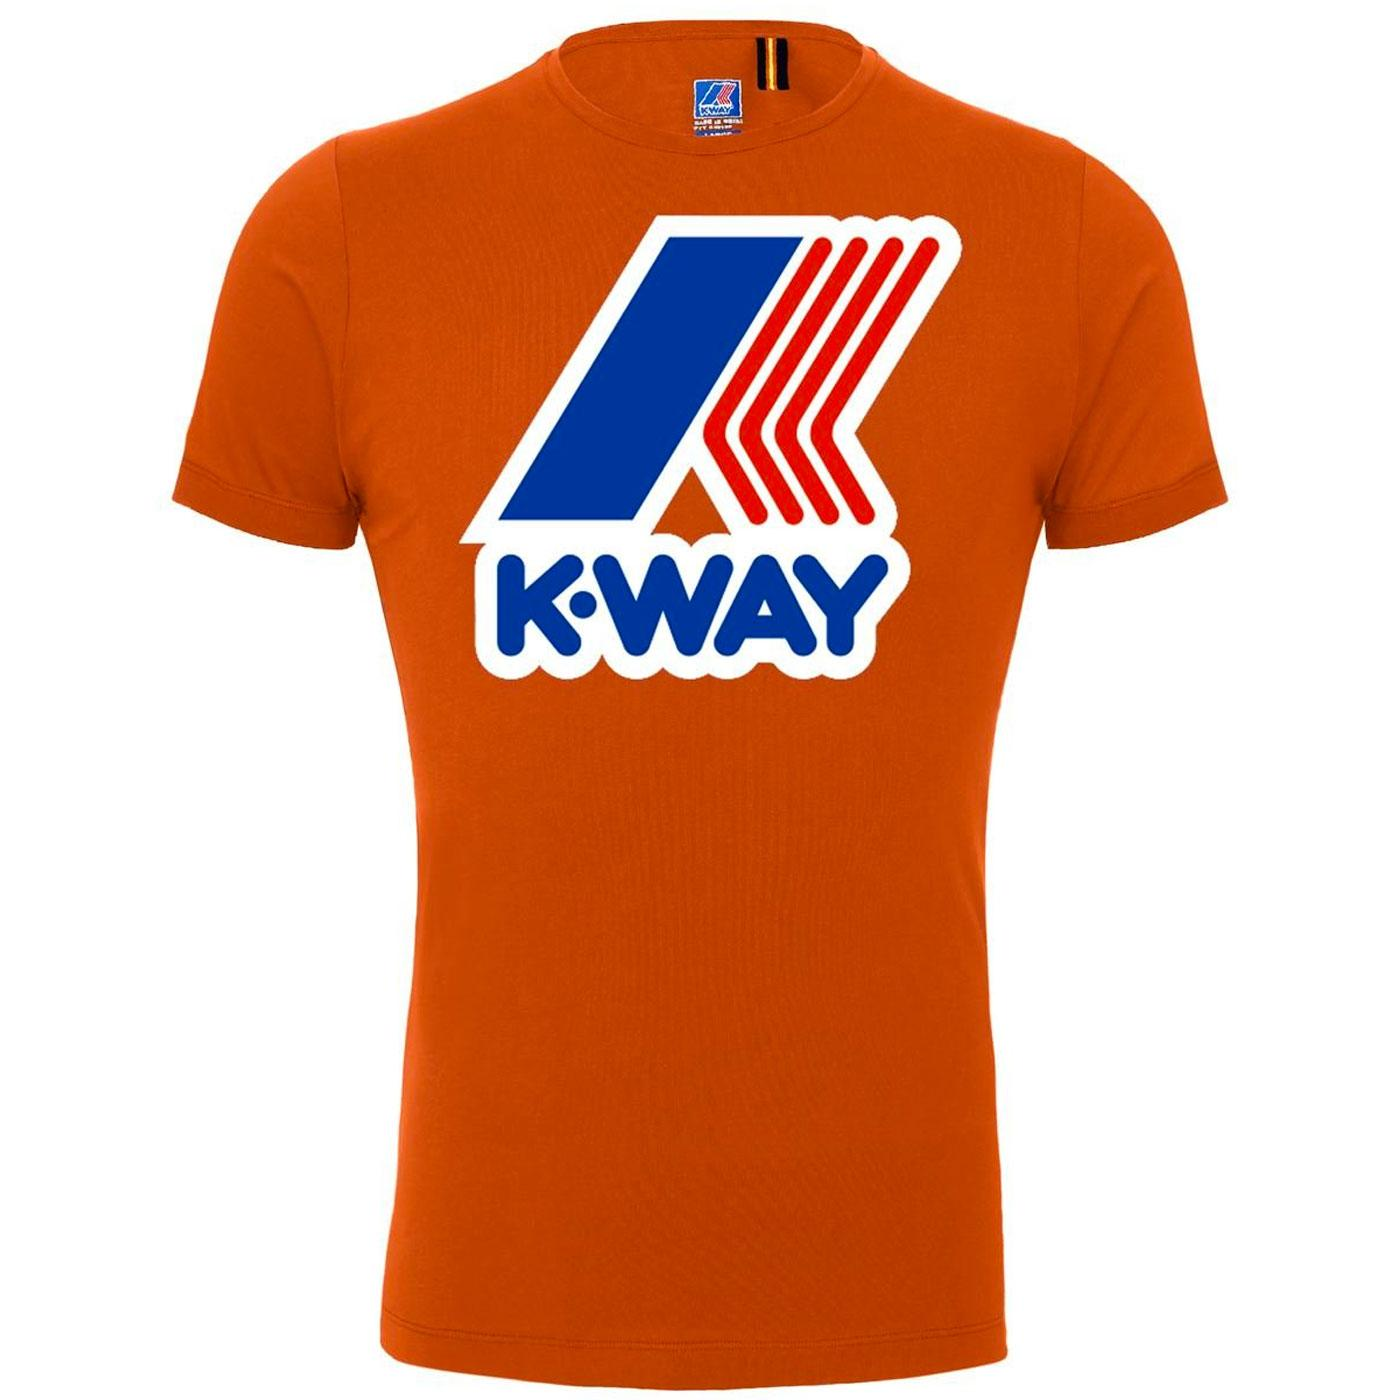 K-WAY Pete Macro Logo Retro 80s Tee (Dark Orange)